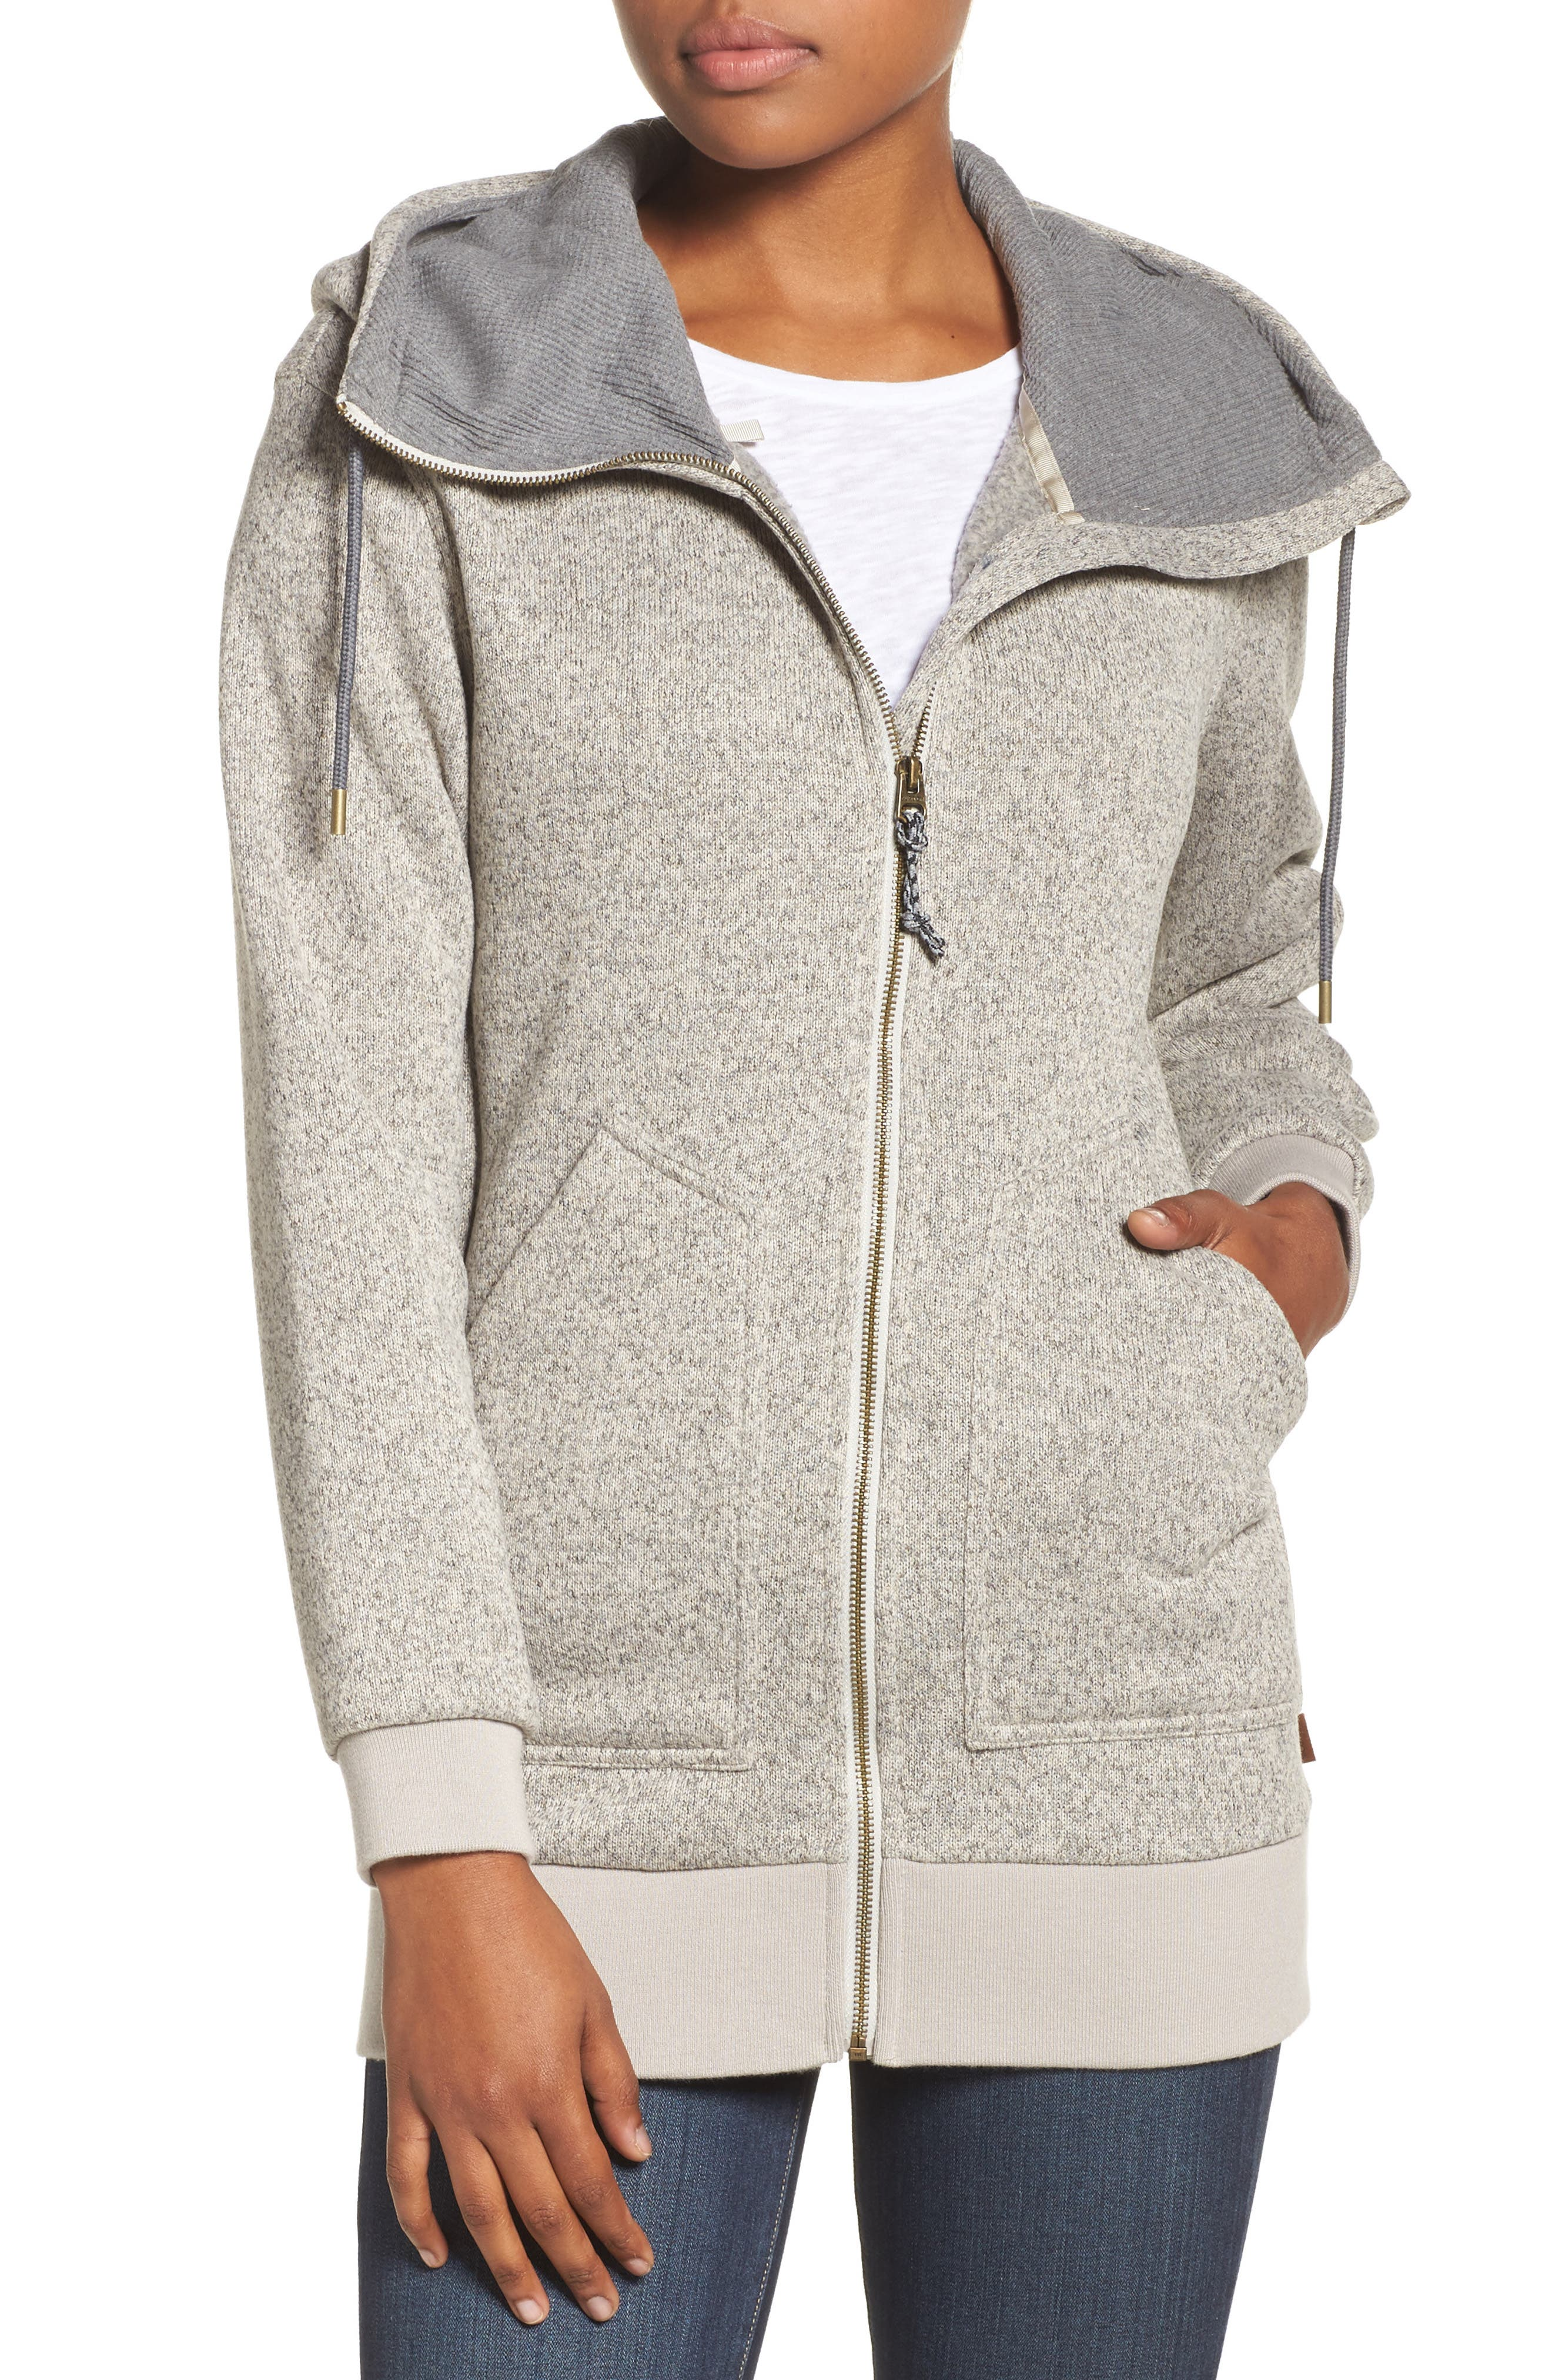 Minxy DRYRIDE Thermex Sweater Knit Fleece Hoodie,                             Main thumbnail 1, color,                             020